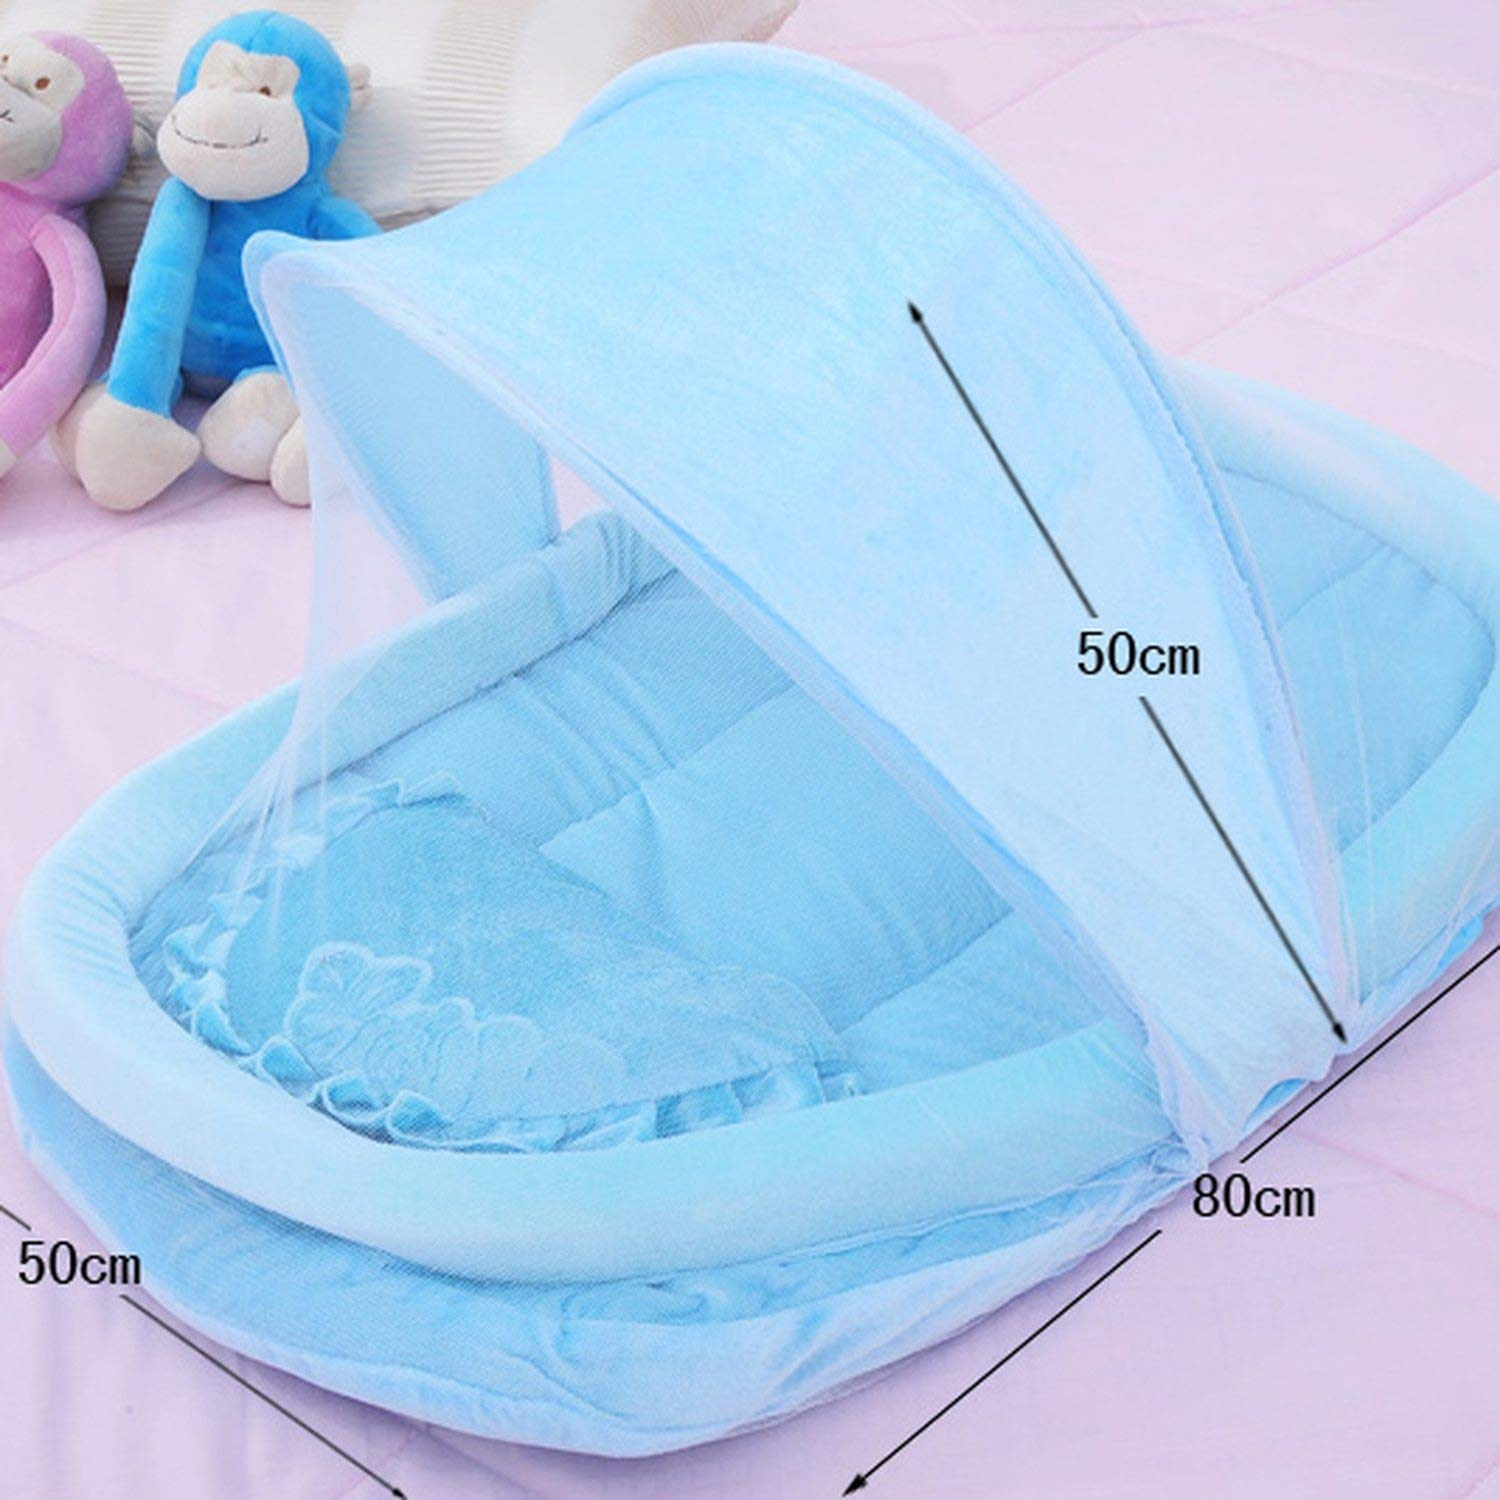 Baby Infant Bed Canopy Mosquito Net with Mattress Pillow, Baby Cradle Mosquito Insect Net, Baby Crib Mosquito Tent,Blue by Try My Best Mosquito Net (Image #2)